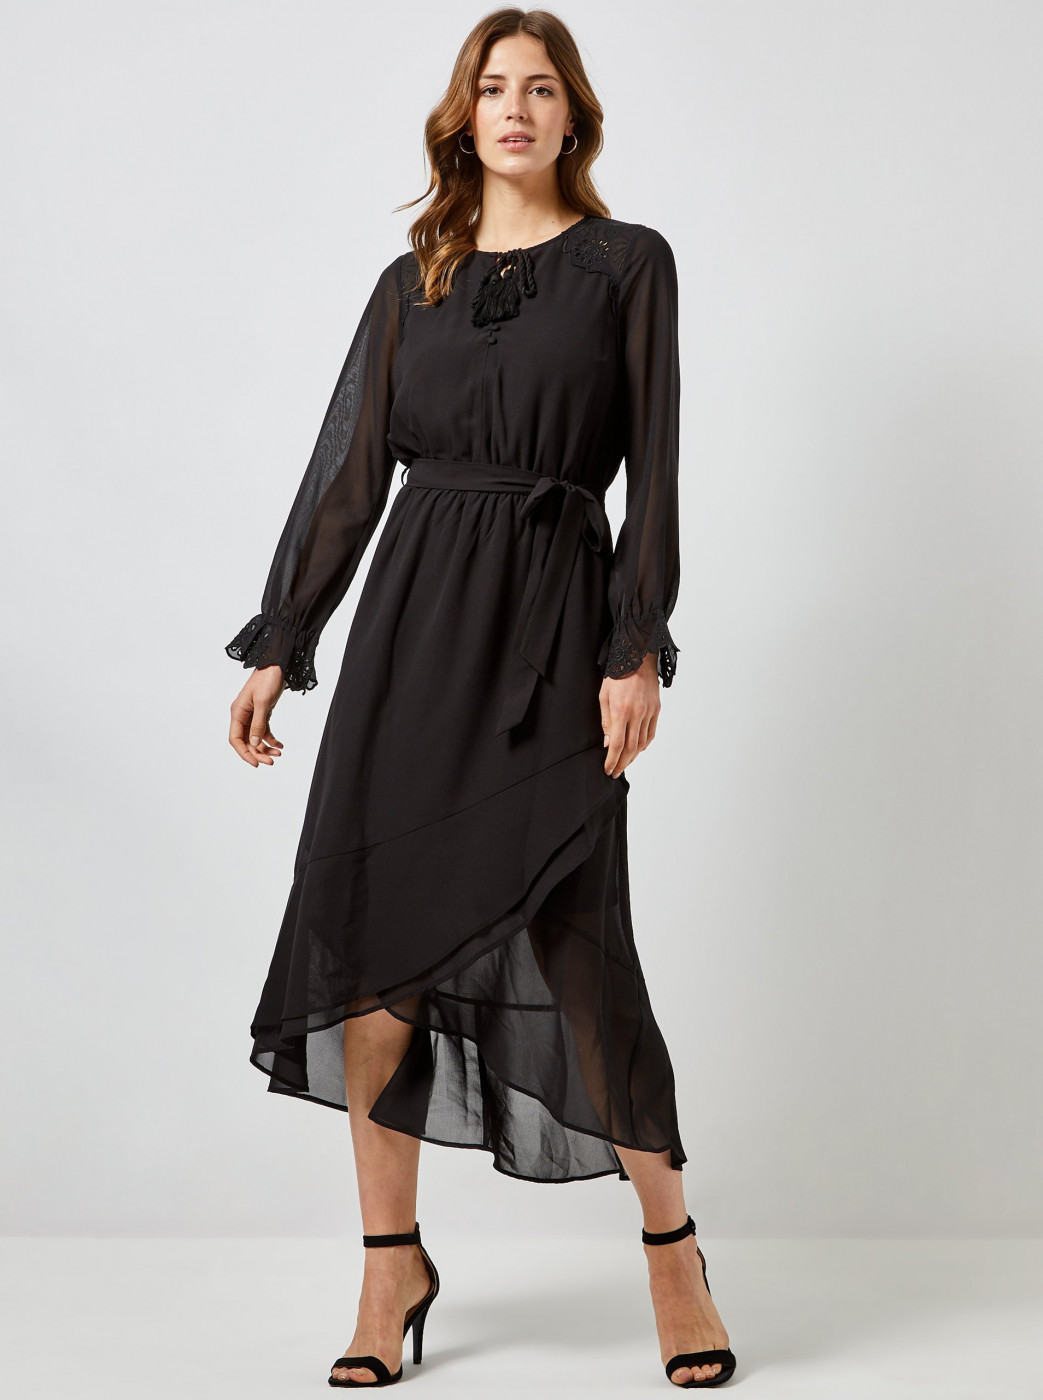 Black maxi dress with cut-out in Dorothy Perkins décolletage